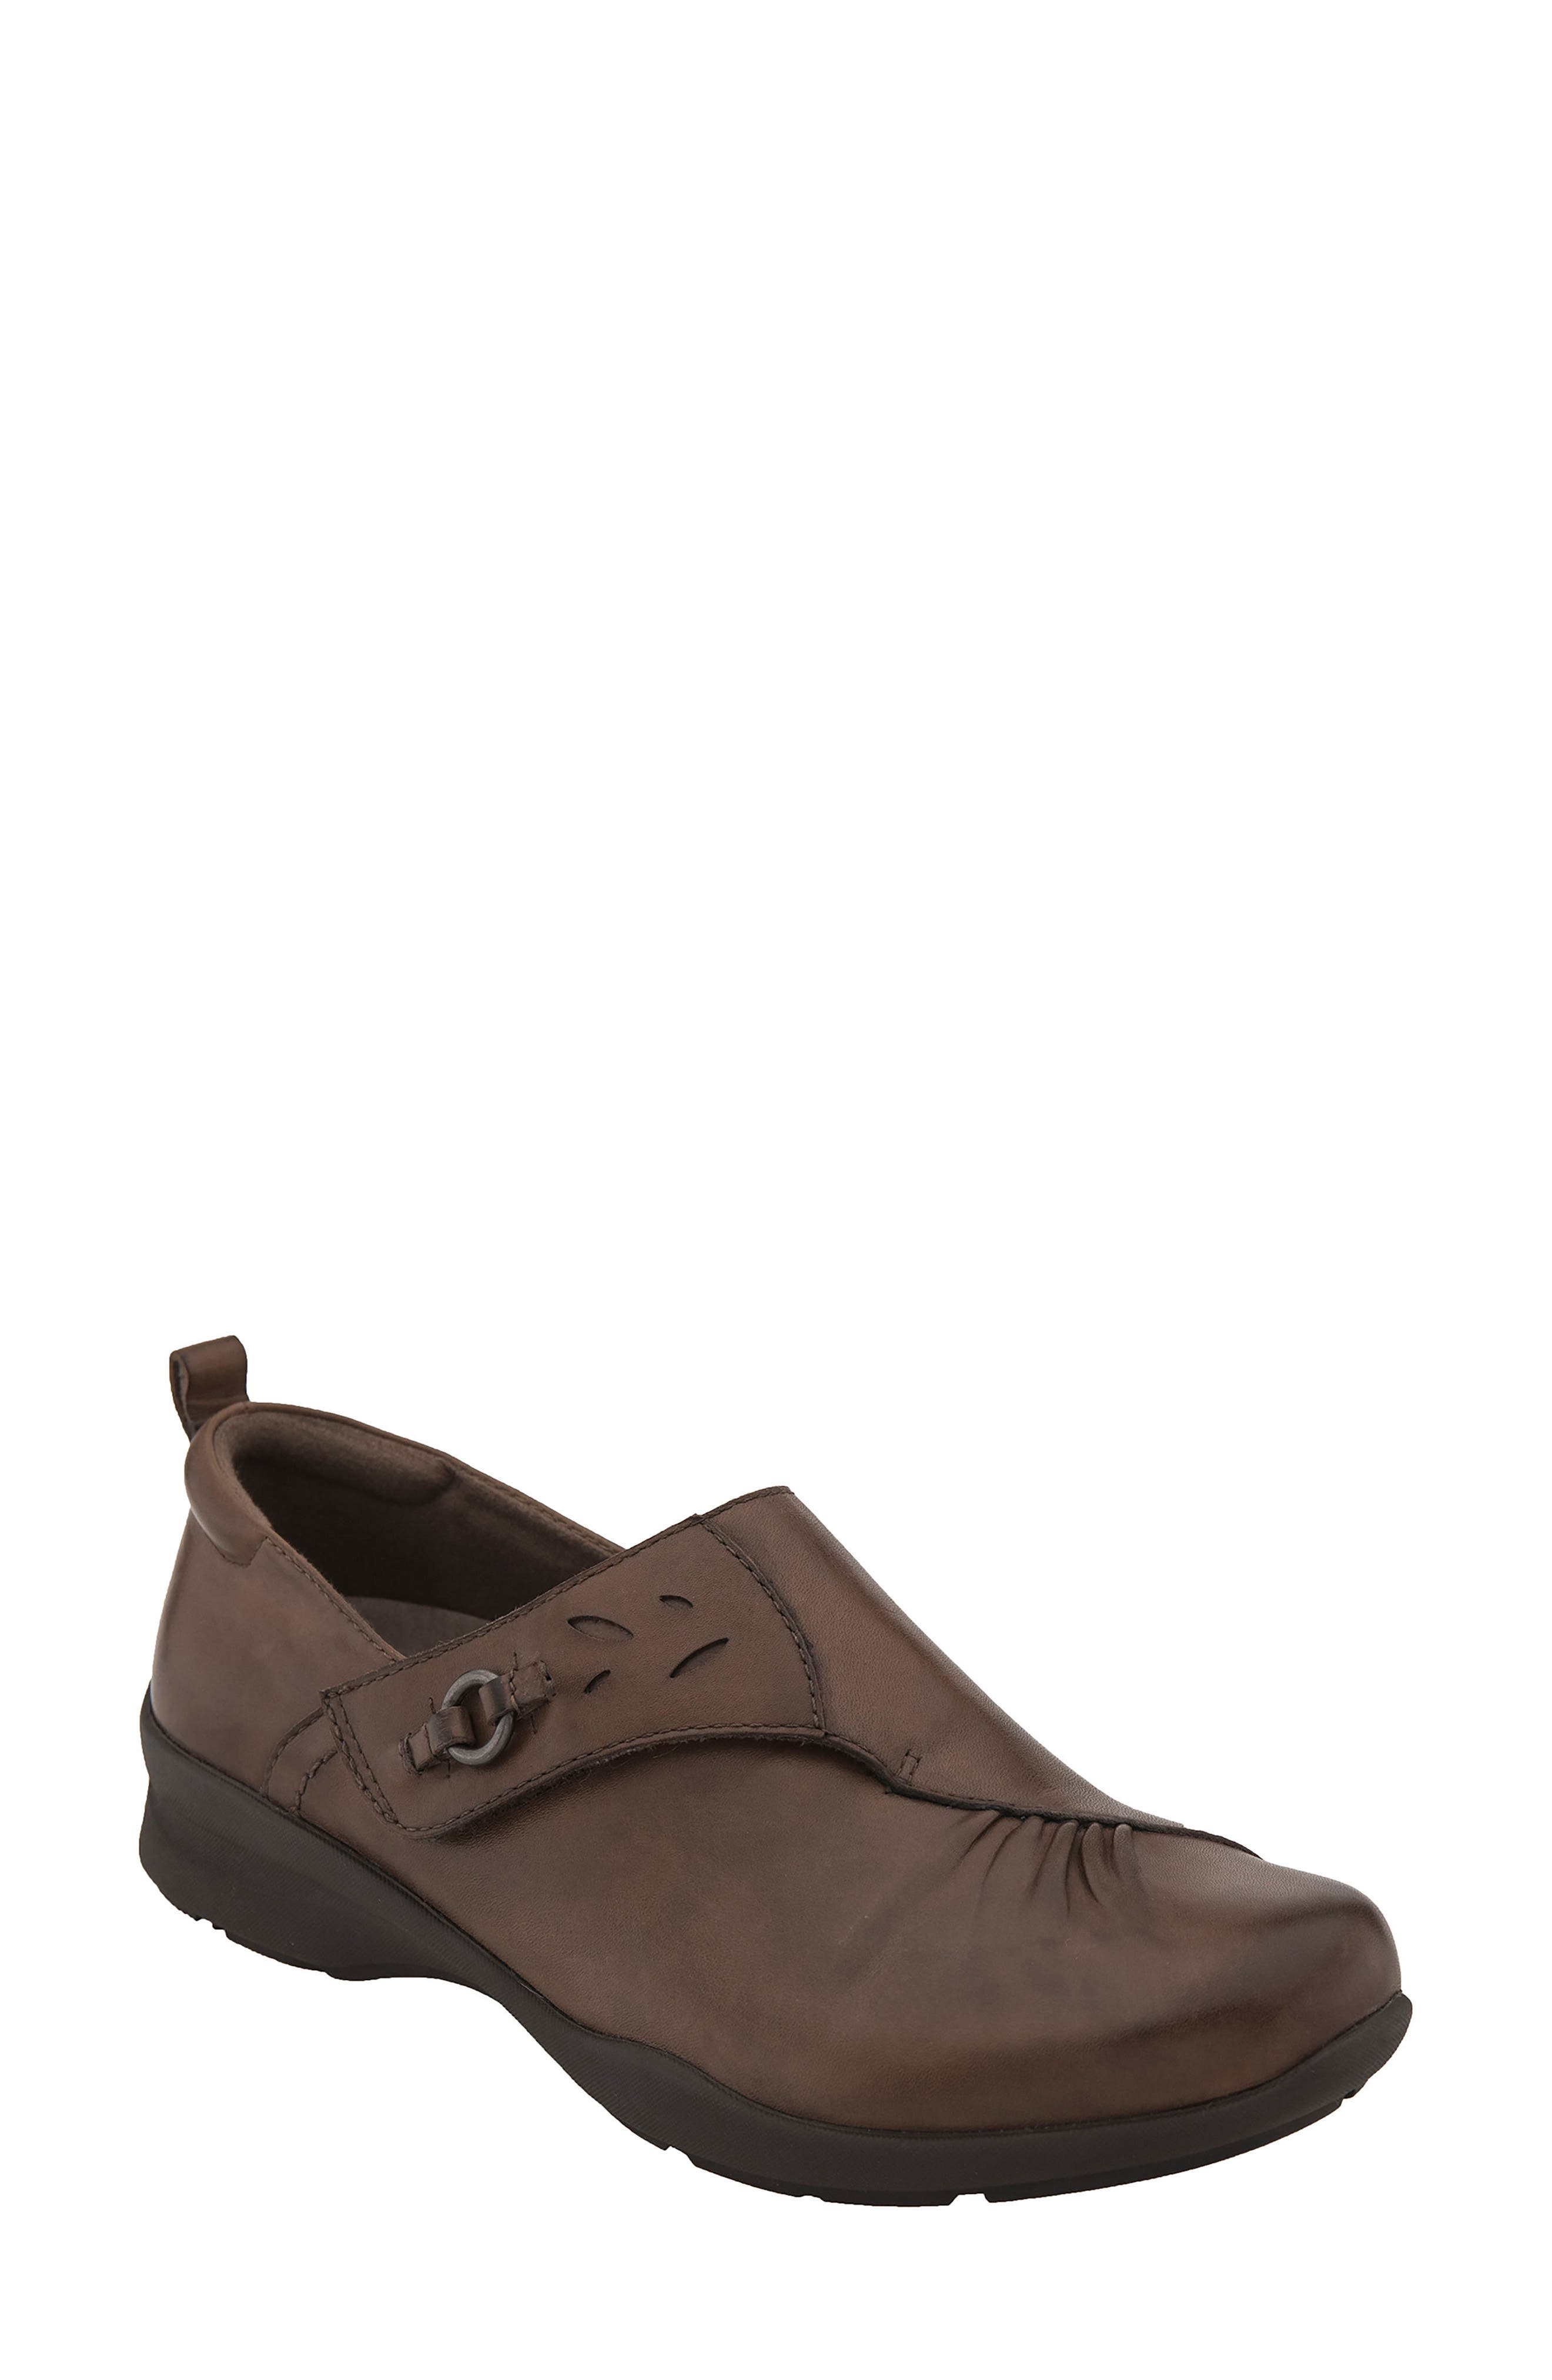 Amity Loafer,                             Main thumbnail 1, color,                             Almond Leather